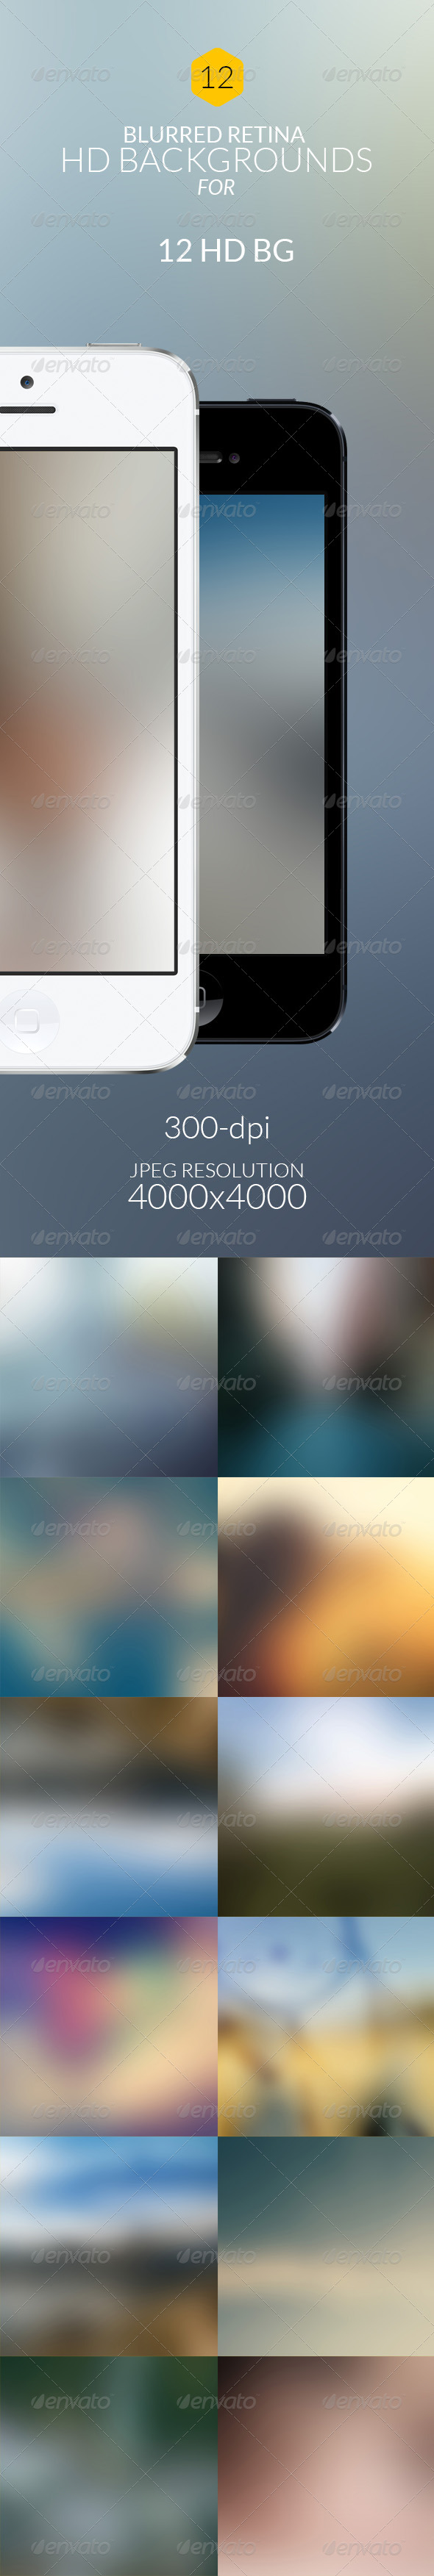 12-HD Blur Soft Backgrounds - Backgrounds Graphics